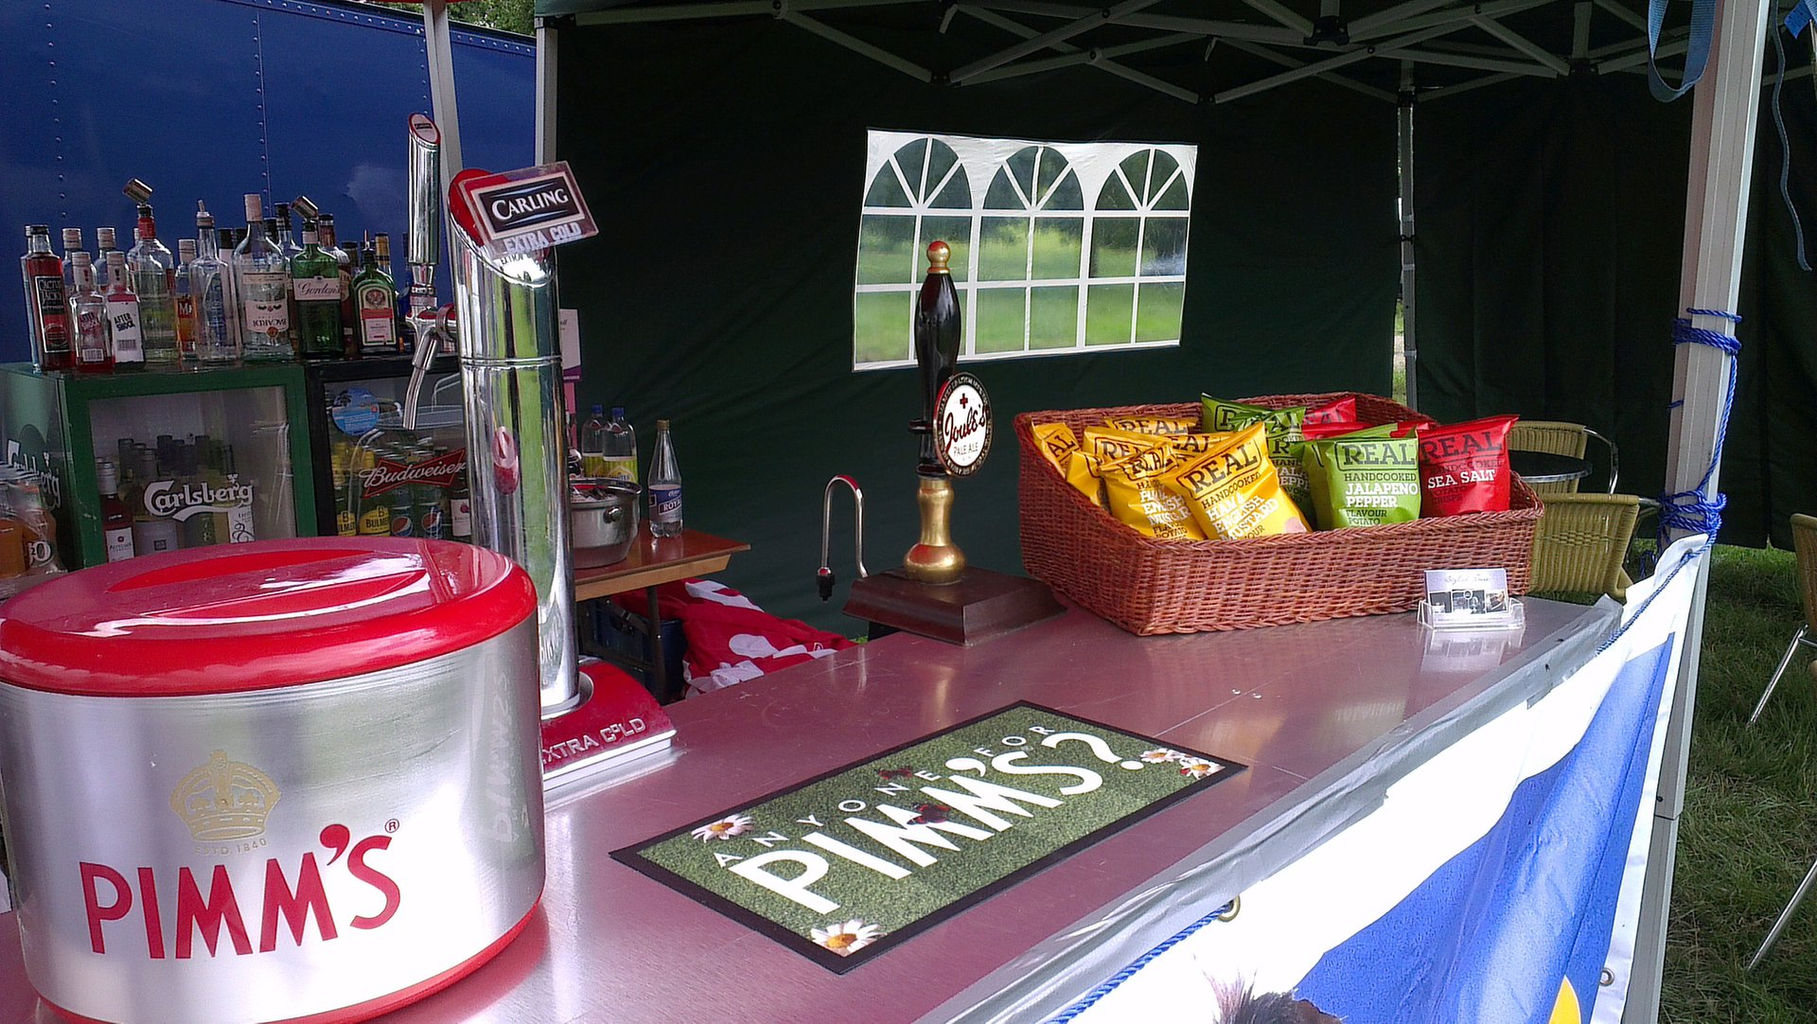 pimms tent dog and duck.jpg & Free website built by stylishbars using Project Pro | Wix.com